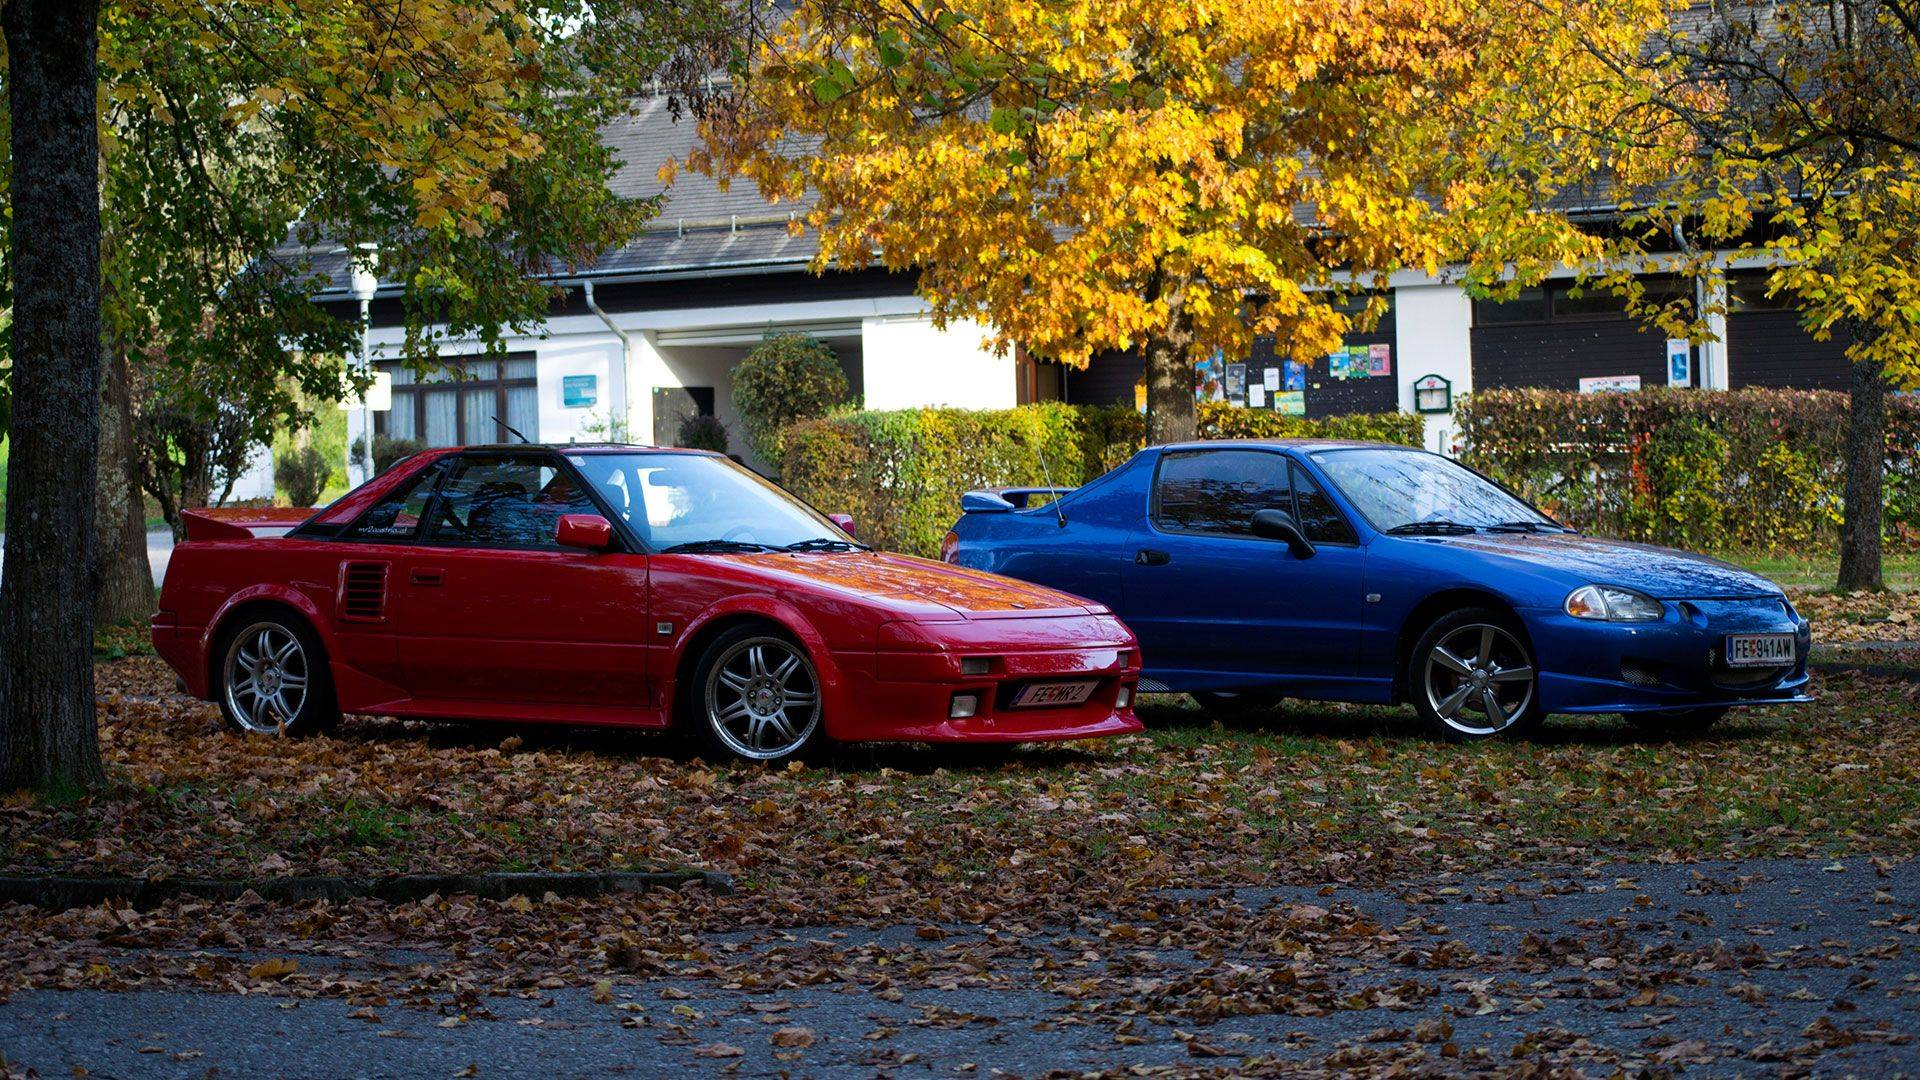 Toyota MR2 AW11, Honda Civic CRX delsol